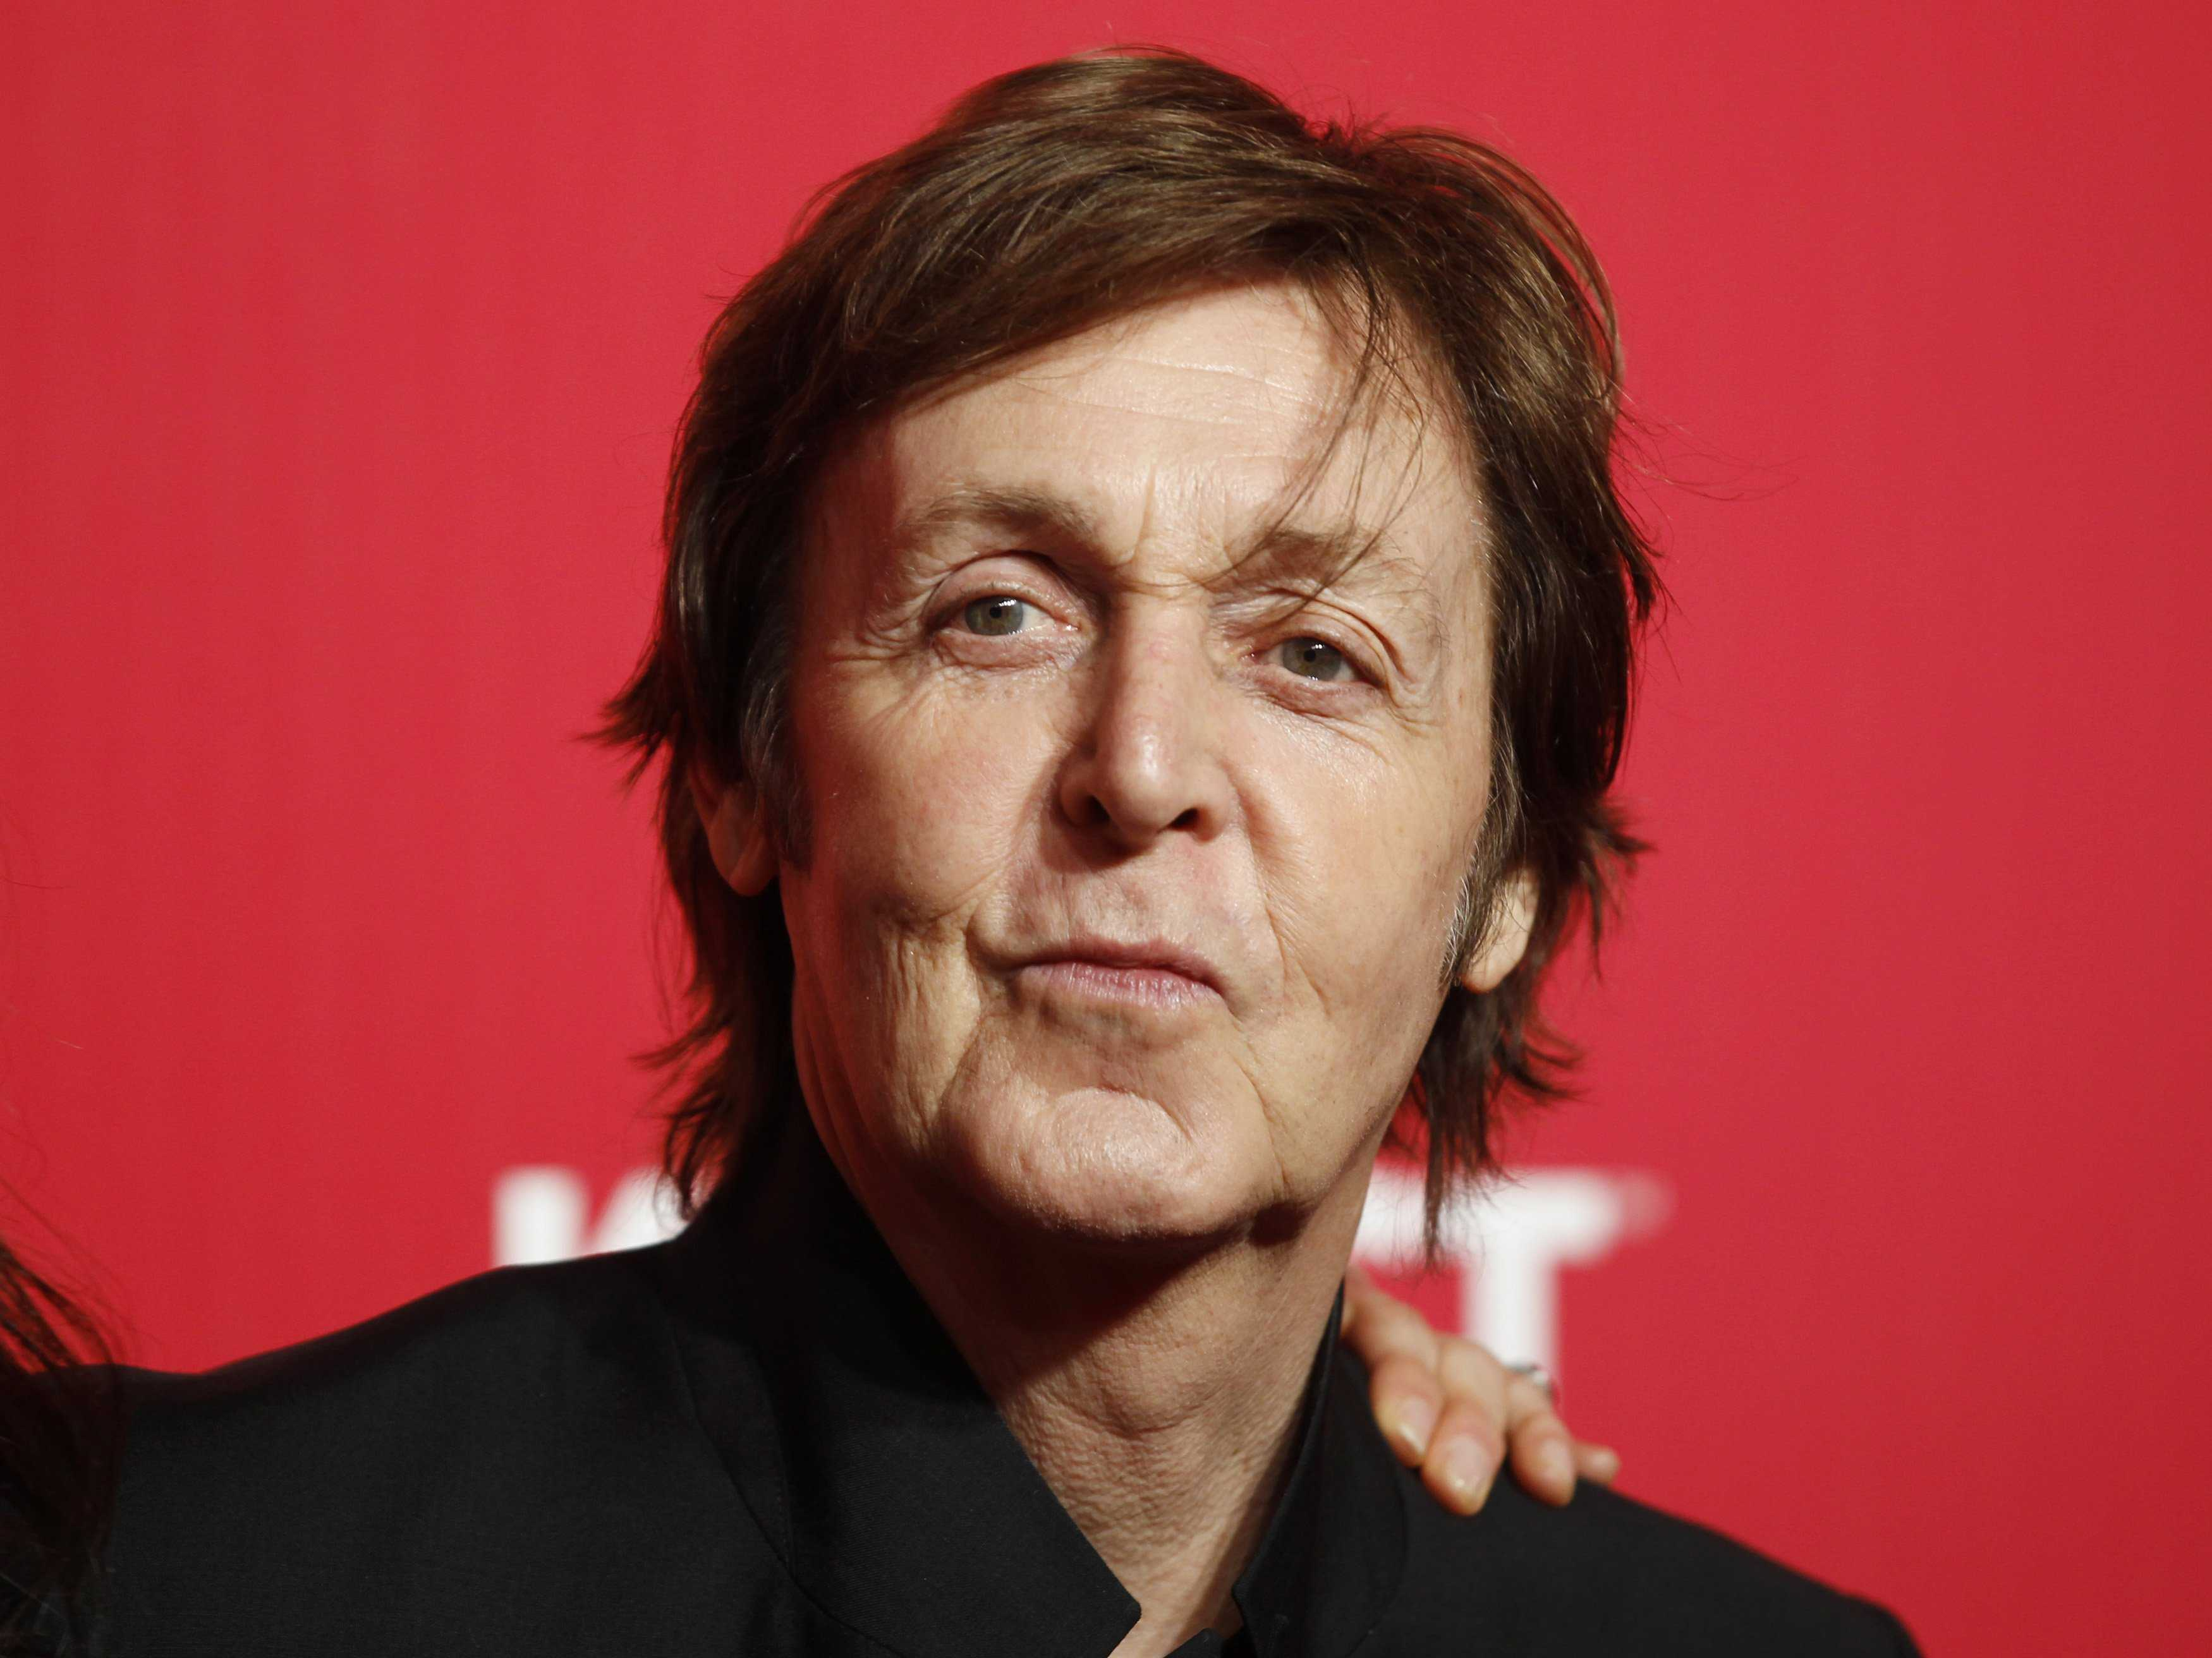 , Paul McCartney demanda a Sony por derechos de los Beatles